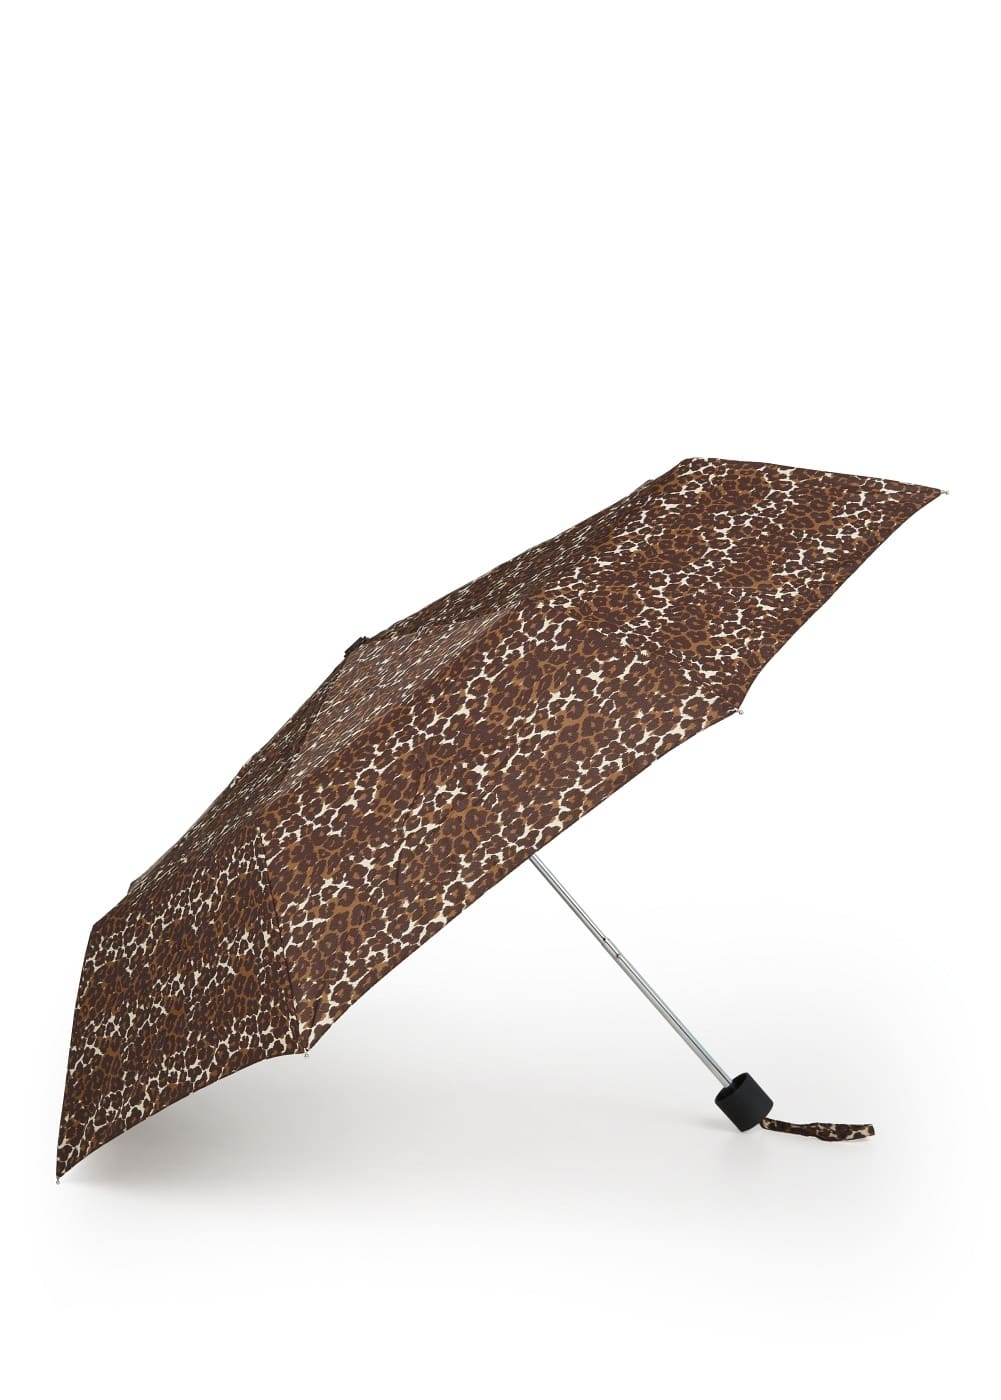 Guarda-chuva estampado leopardo